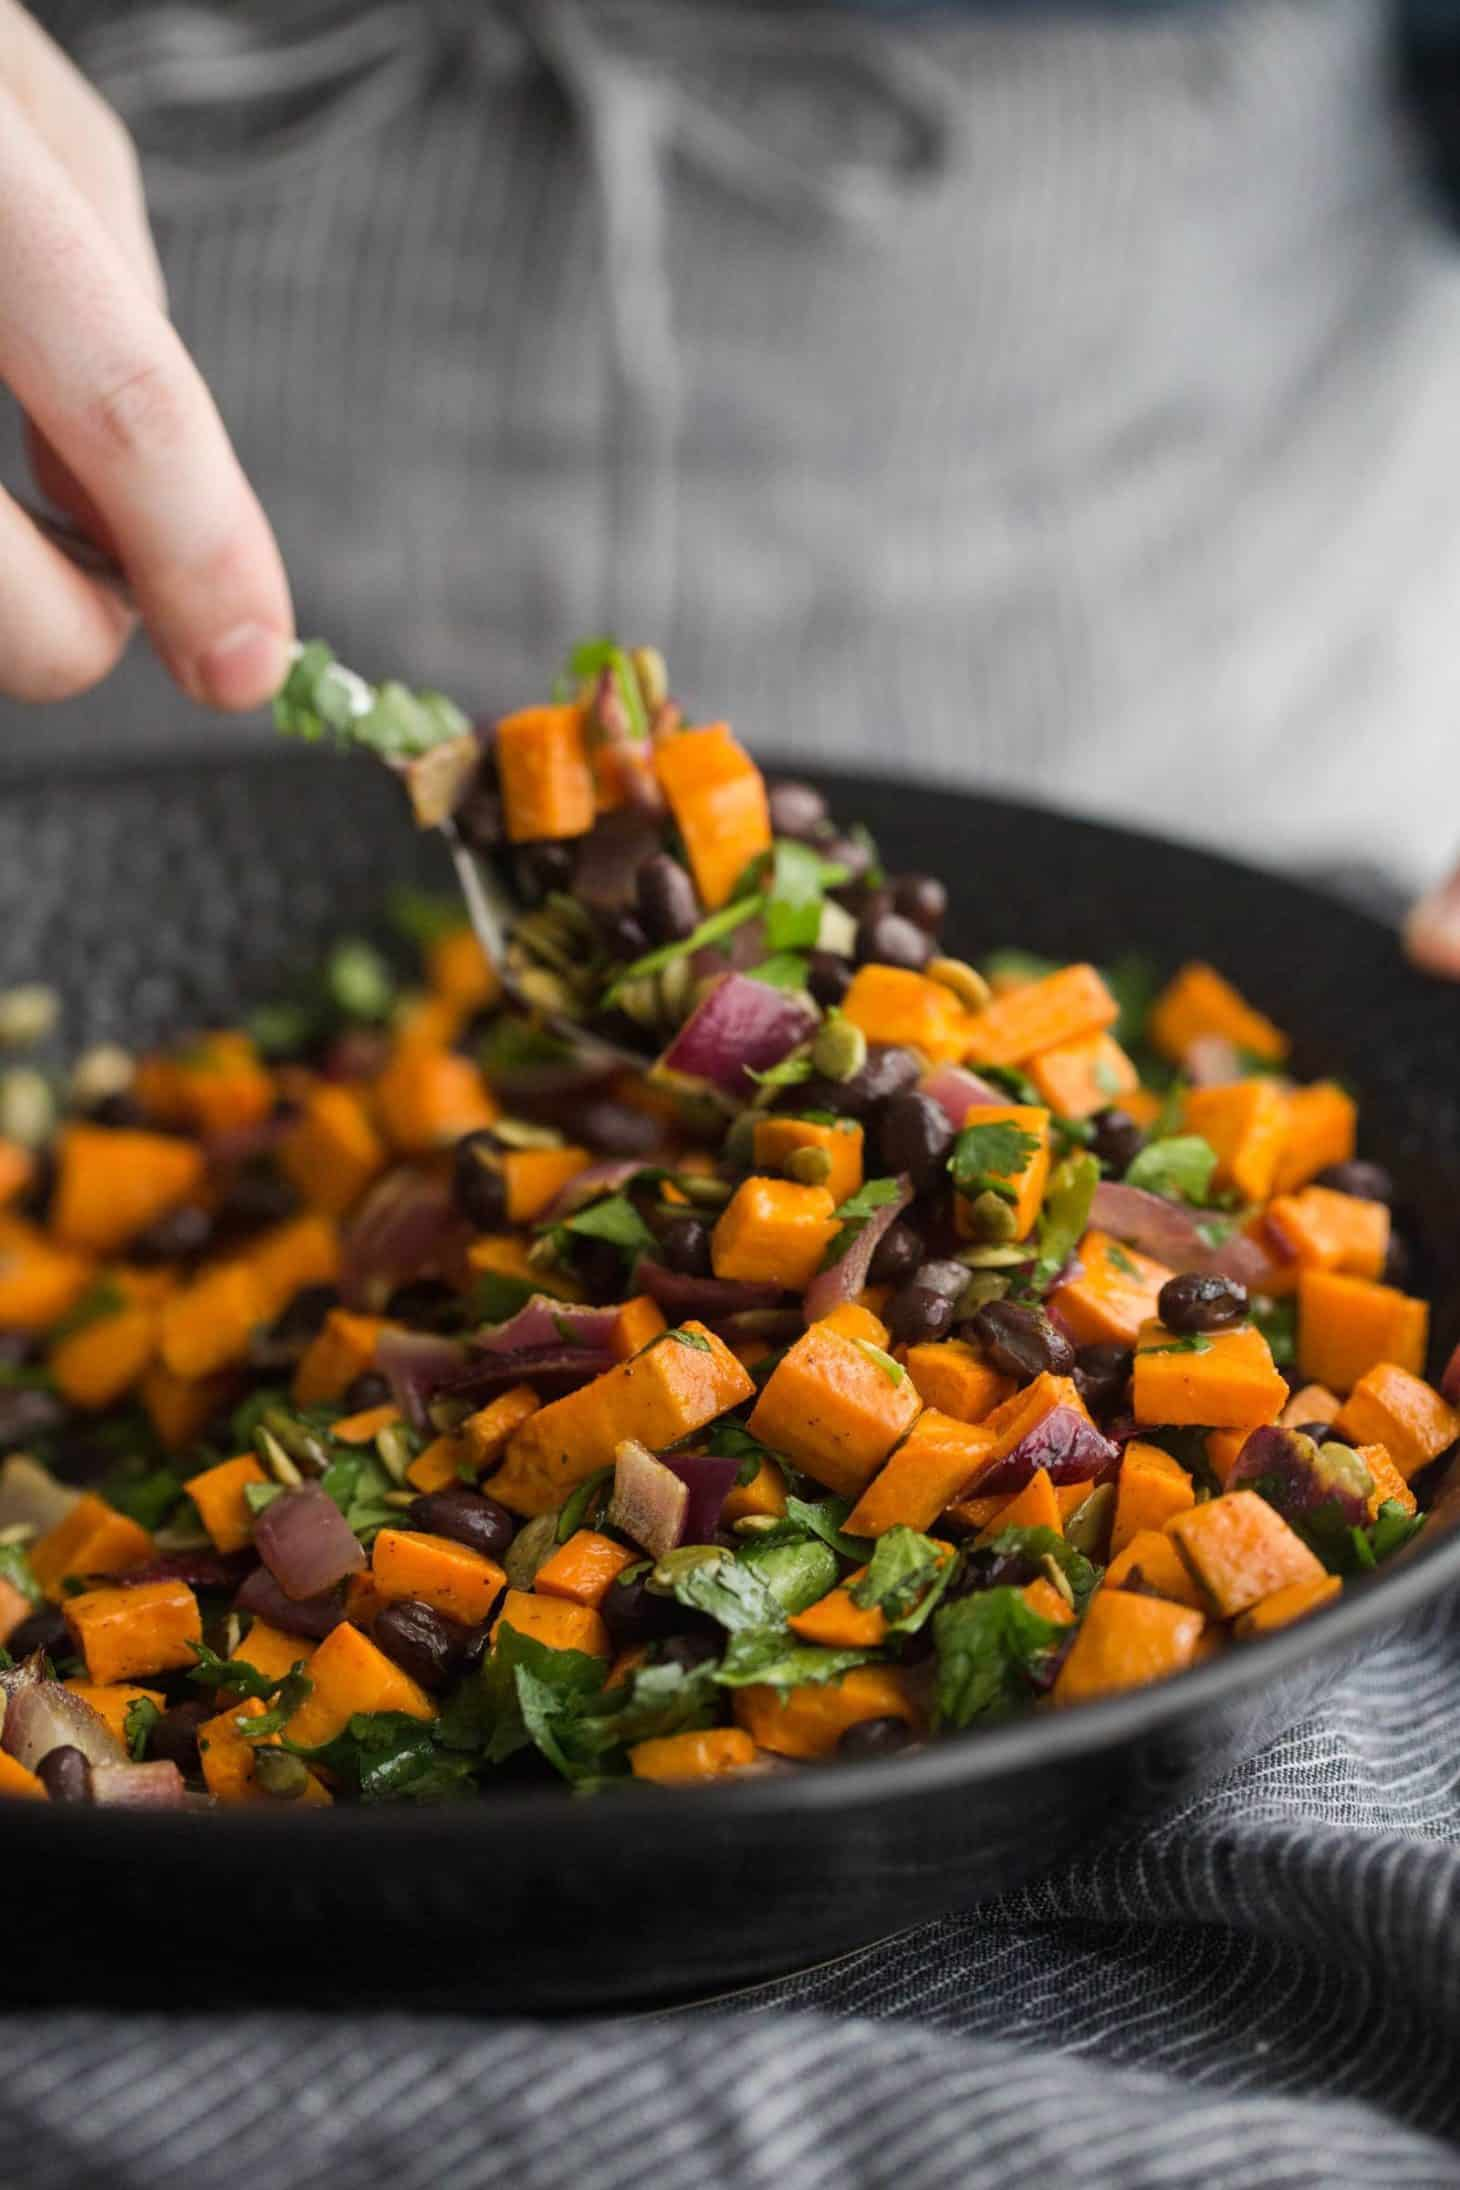 Tossing the black bean salad